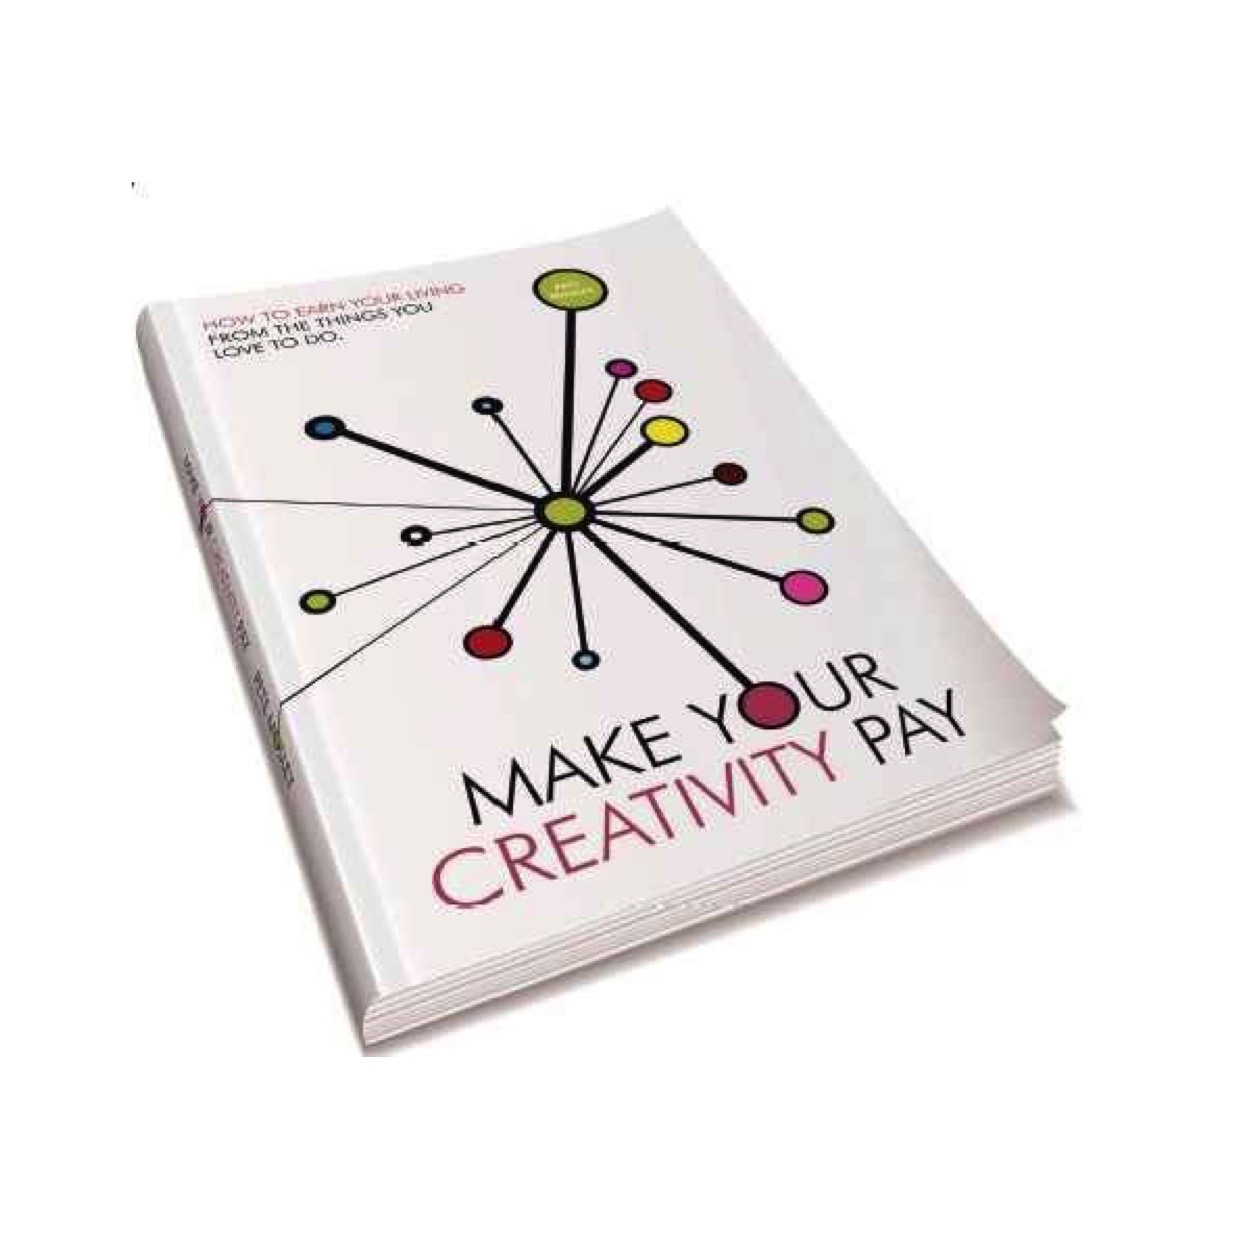 Ebook: Make Your Creativity Pay